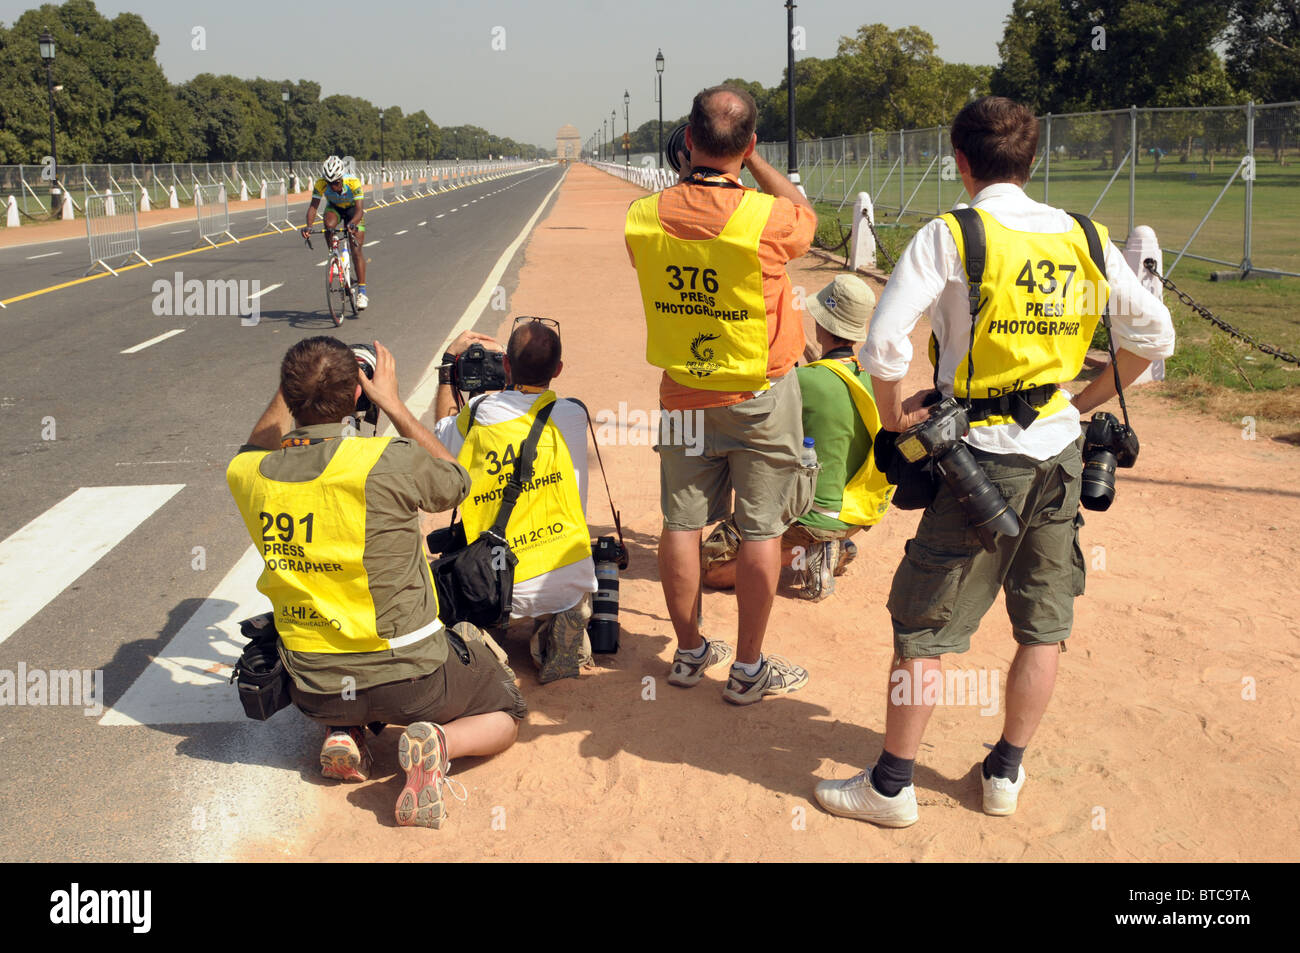 A pack of Sports photographers. Stock Photo